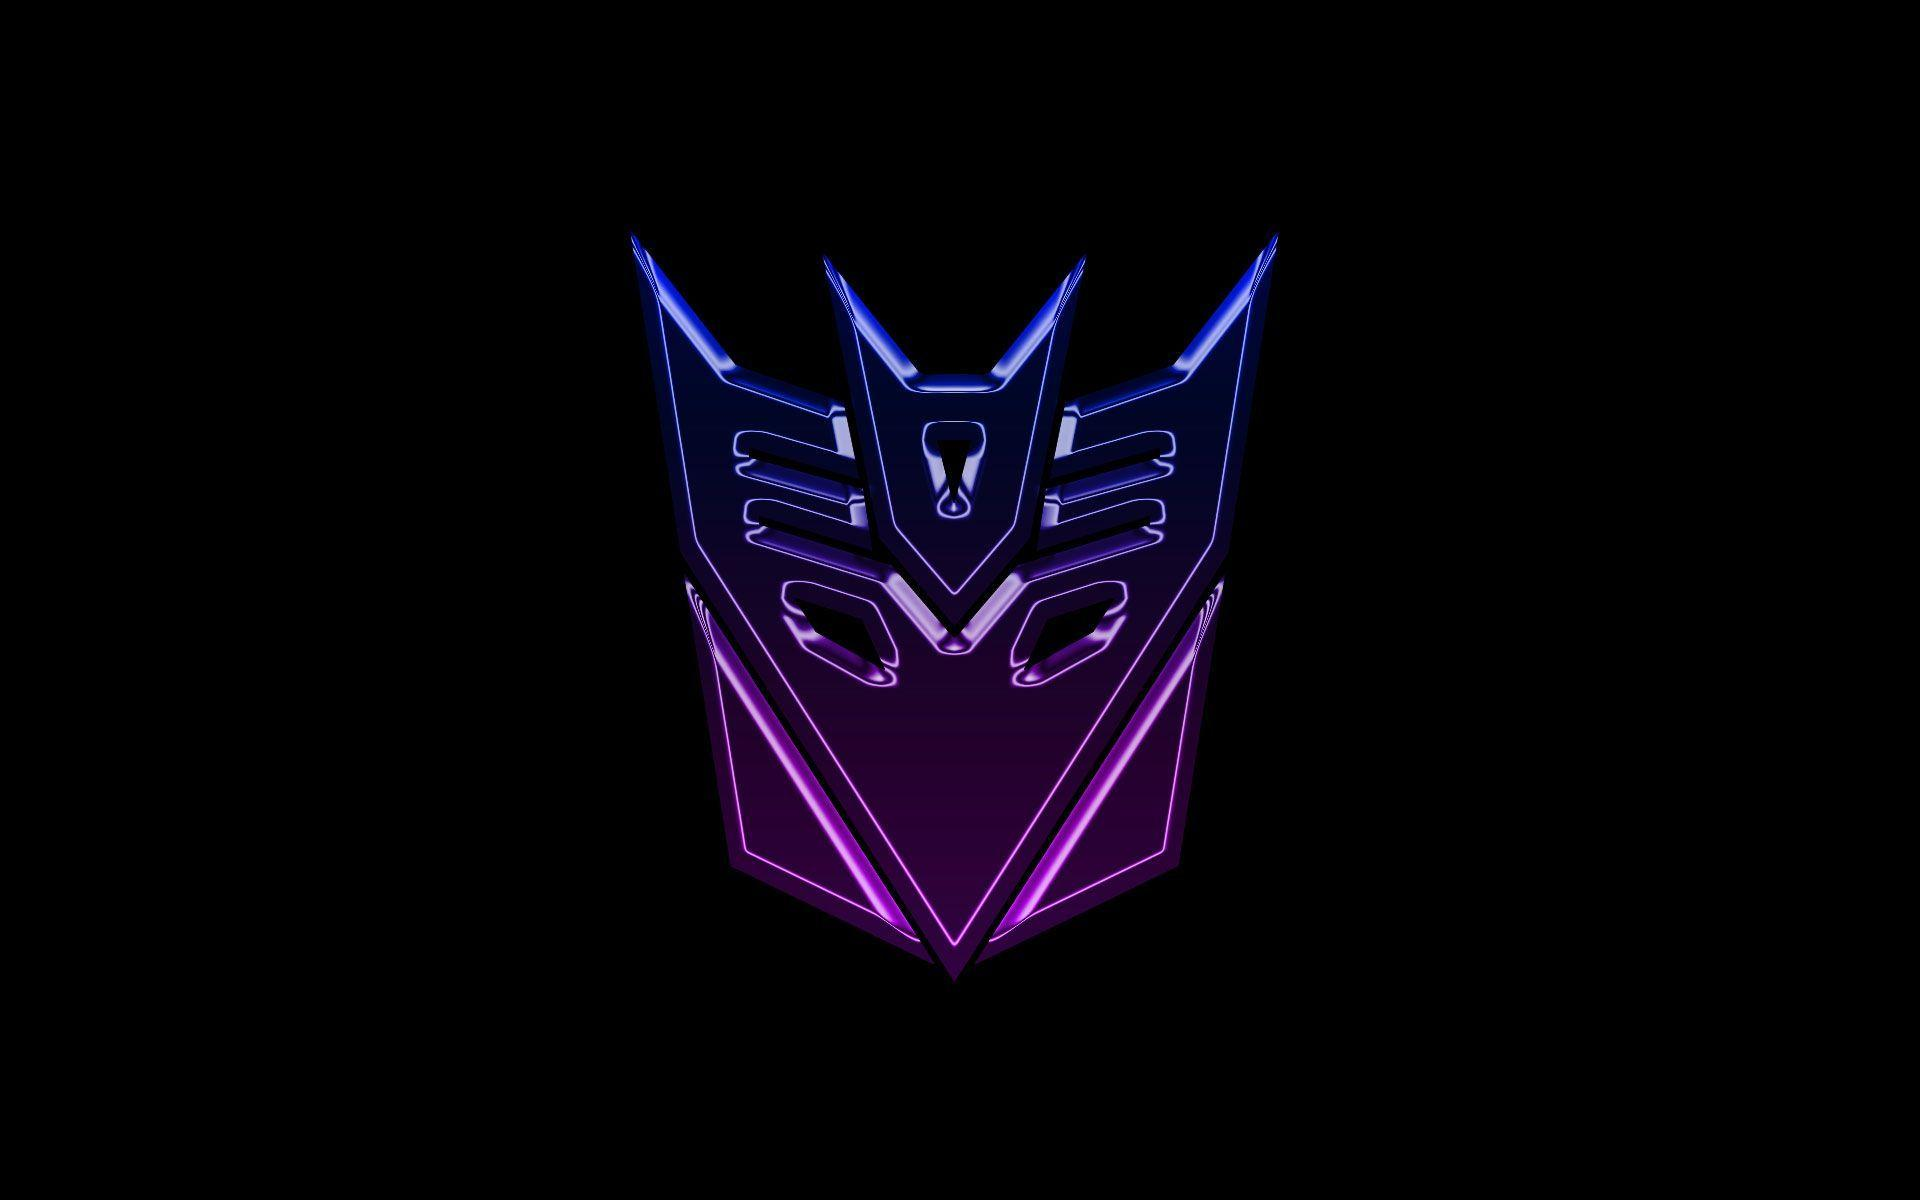 Transformers Decepticons Wallpapers - Wallpaper Cave